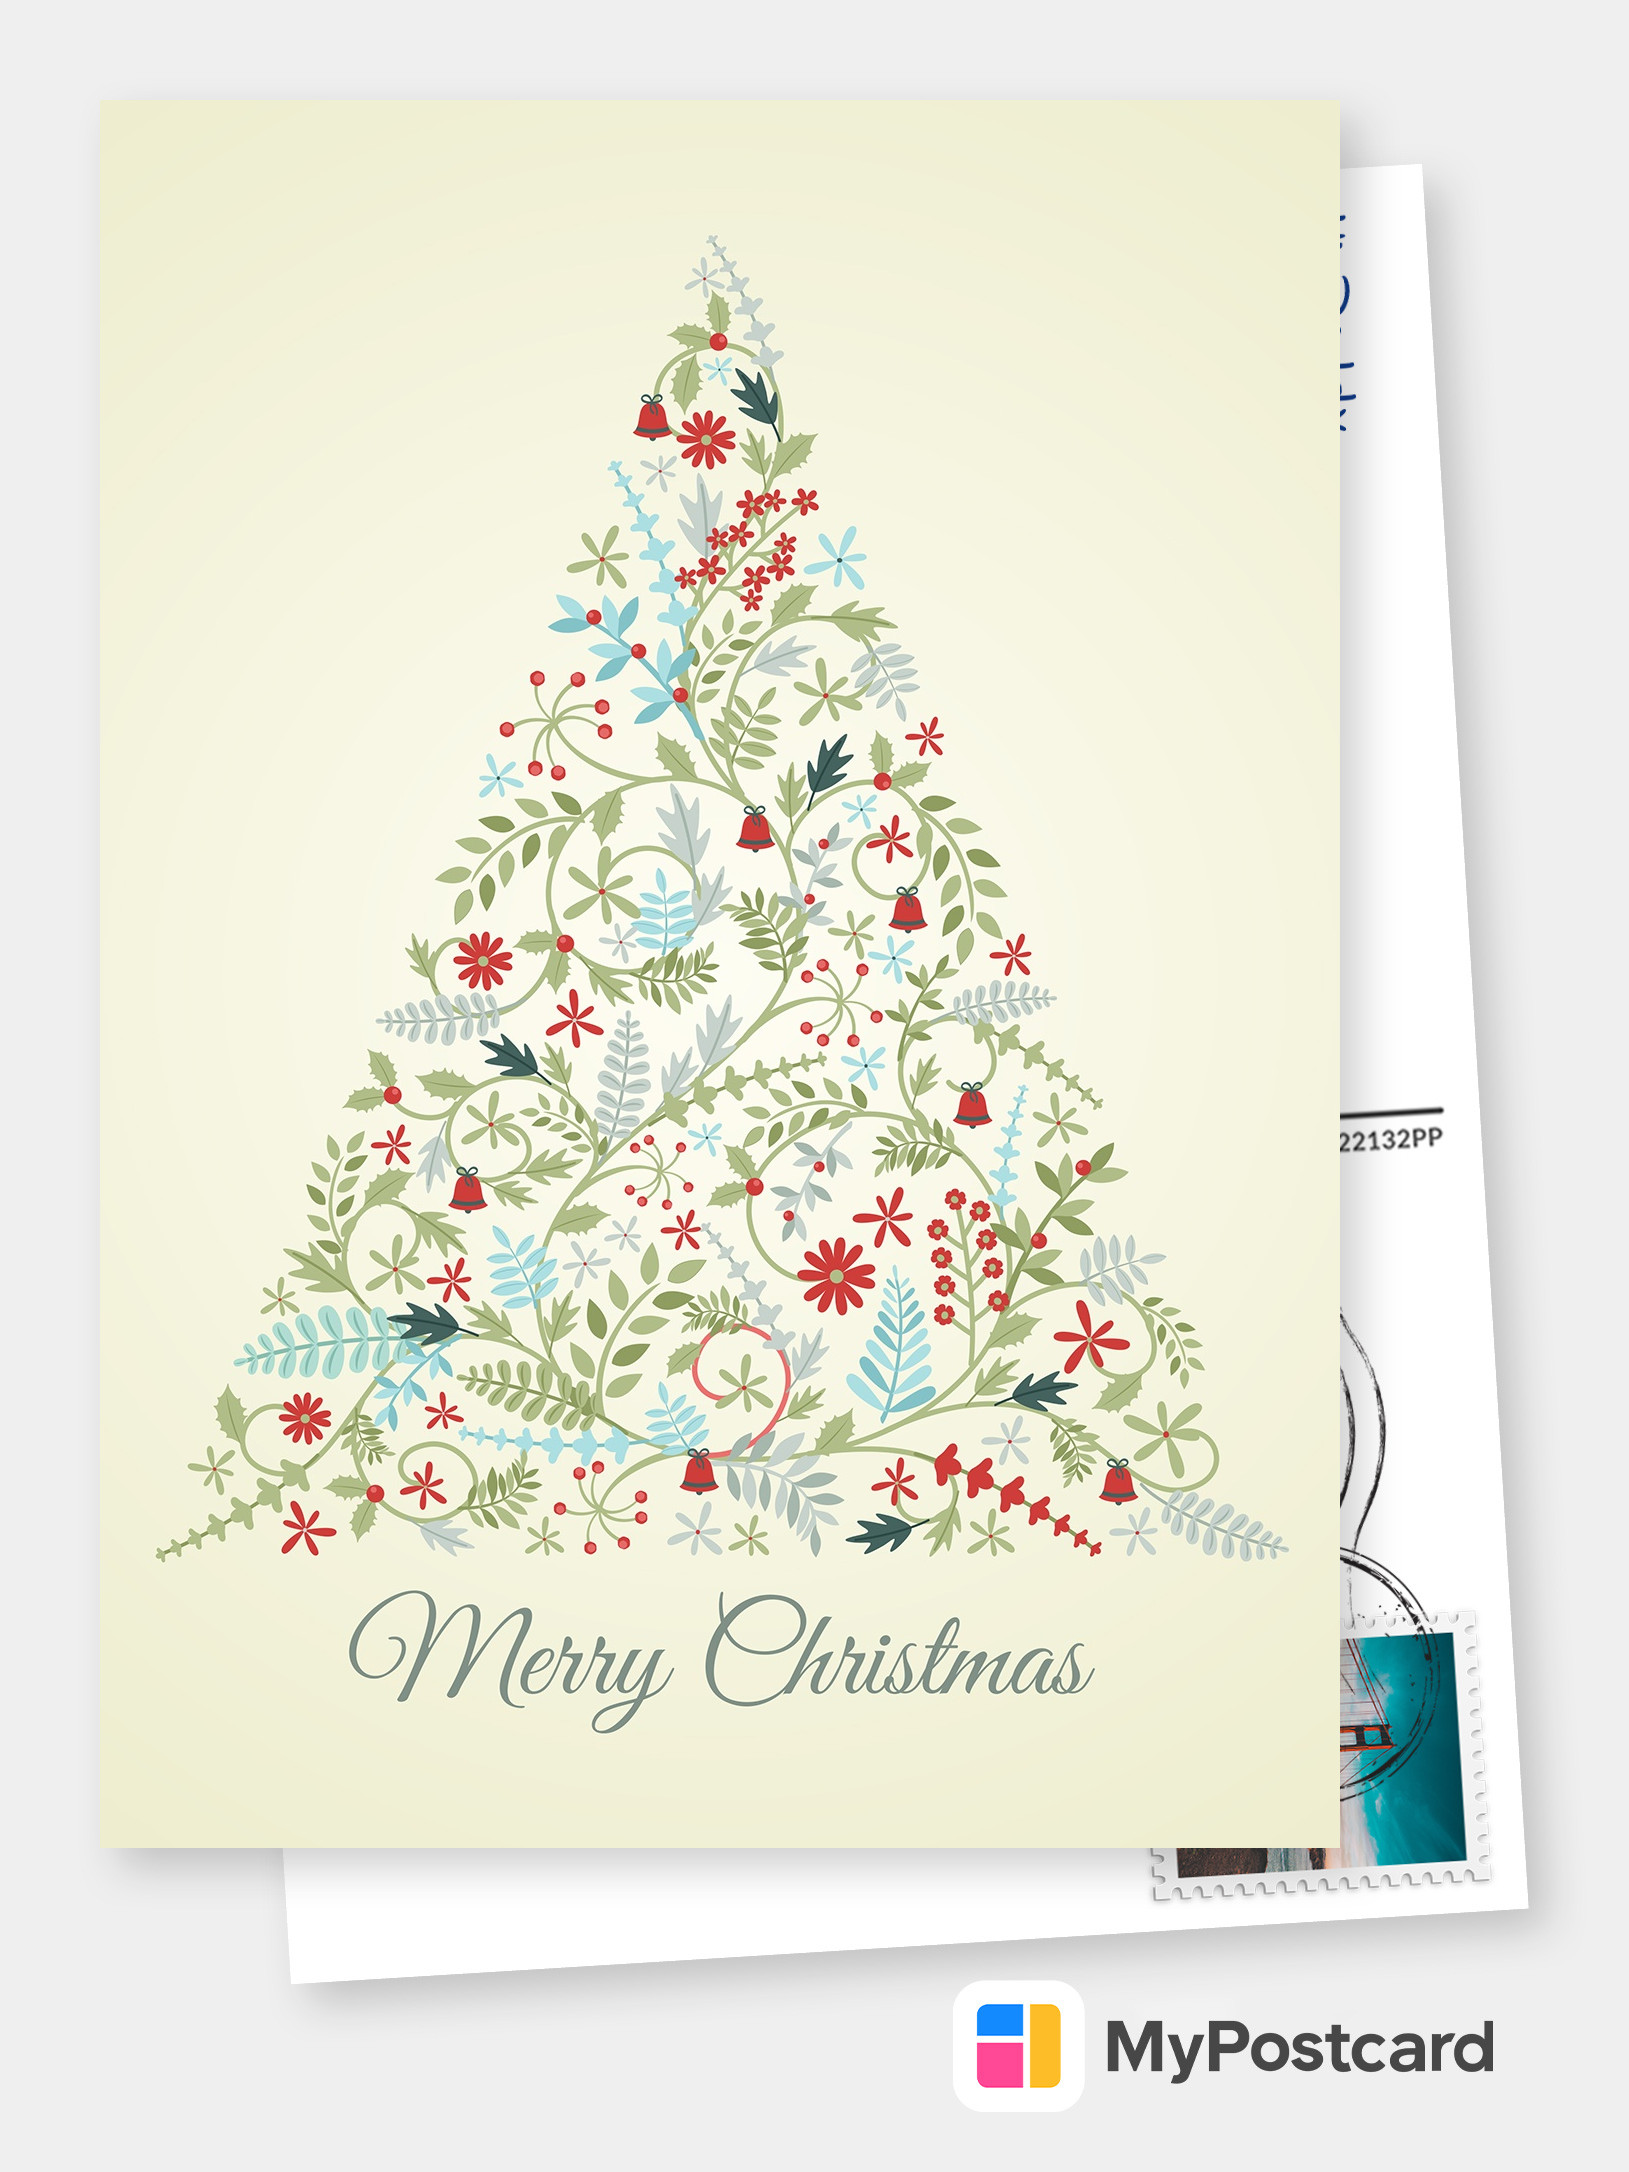 Personalized Christmas Cards Printed